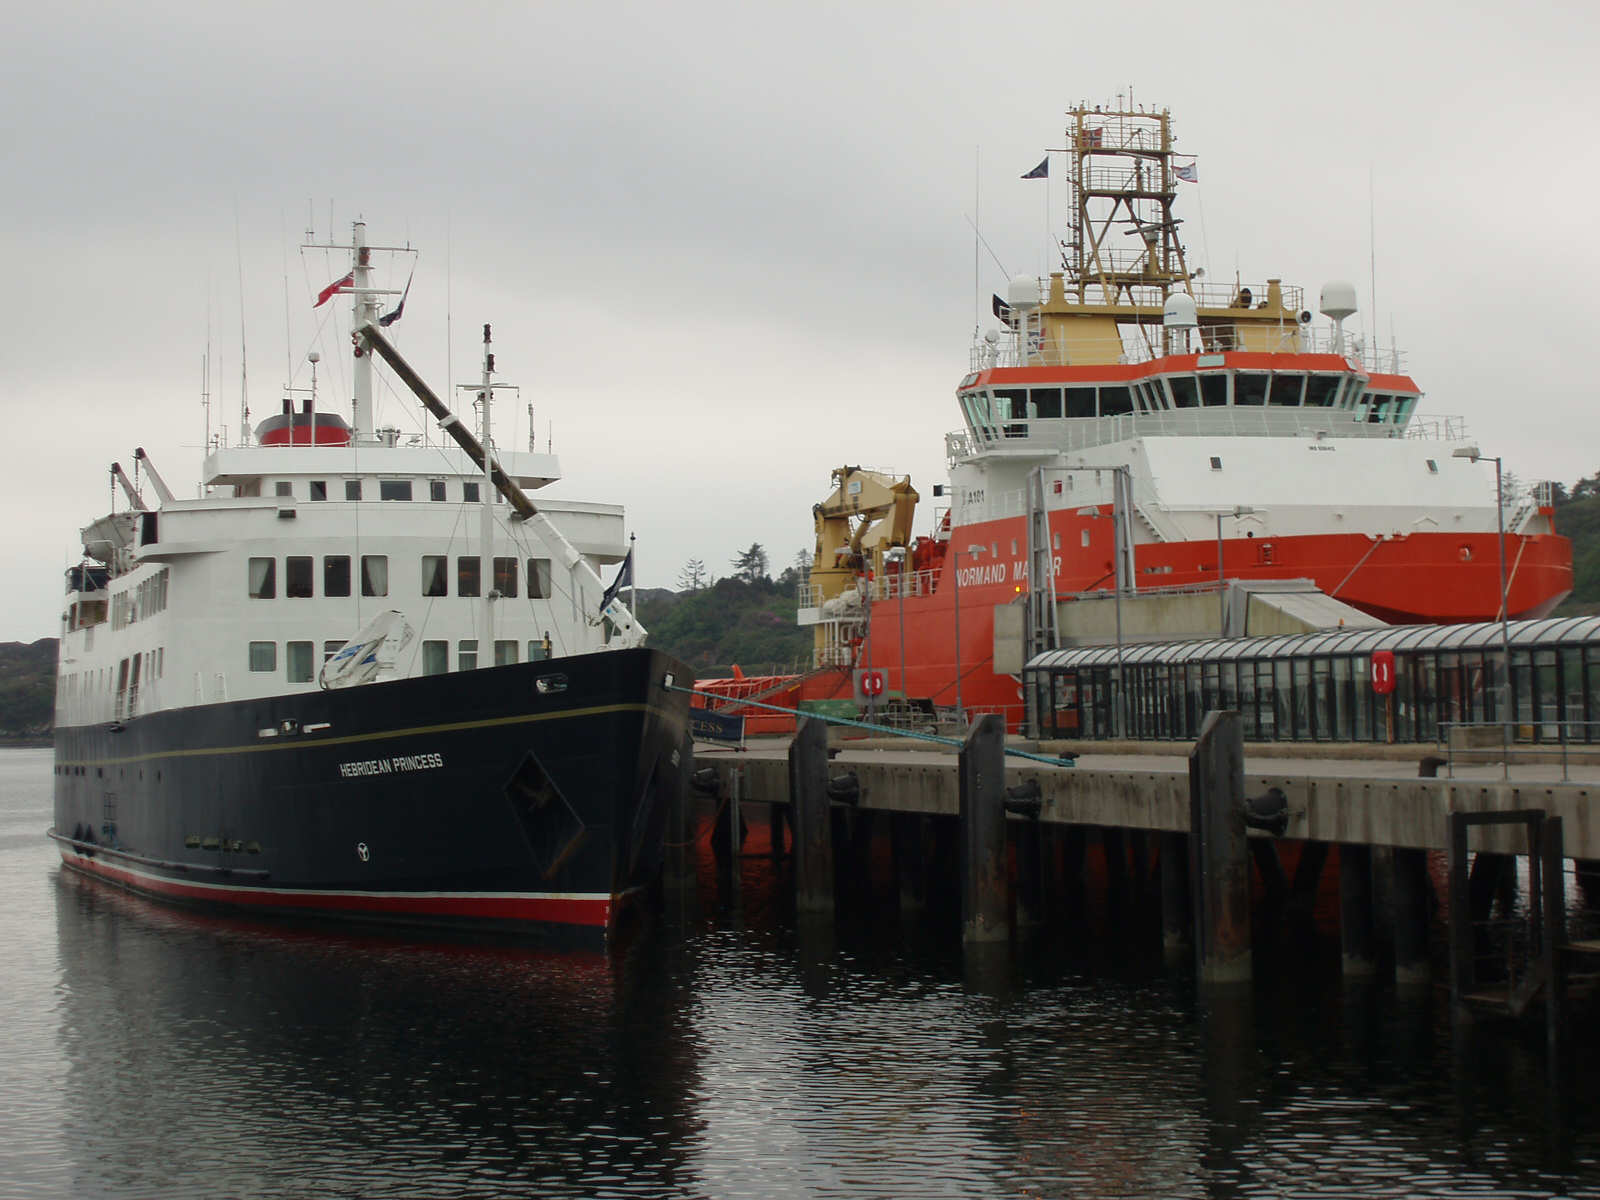 MV Hebridean Princess (left) and MV Normand Master (right) at no 3 pier at 4pm on Tuesday